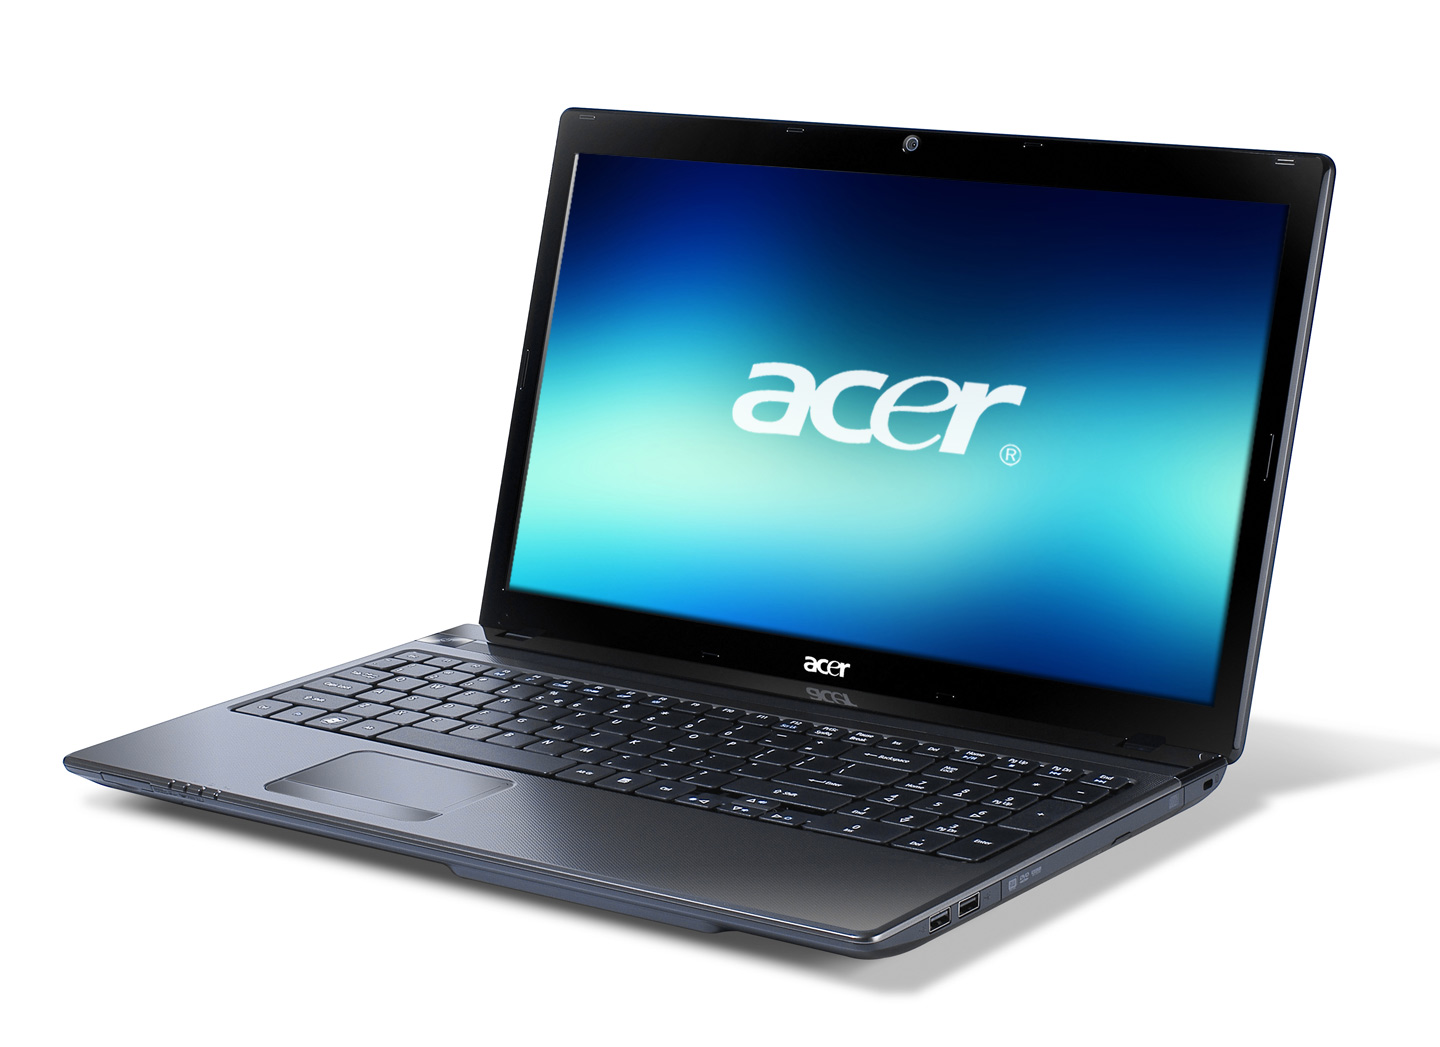 Acer Aspire One Zg8 Drivers Windows 7 Free Download